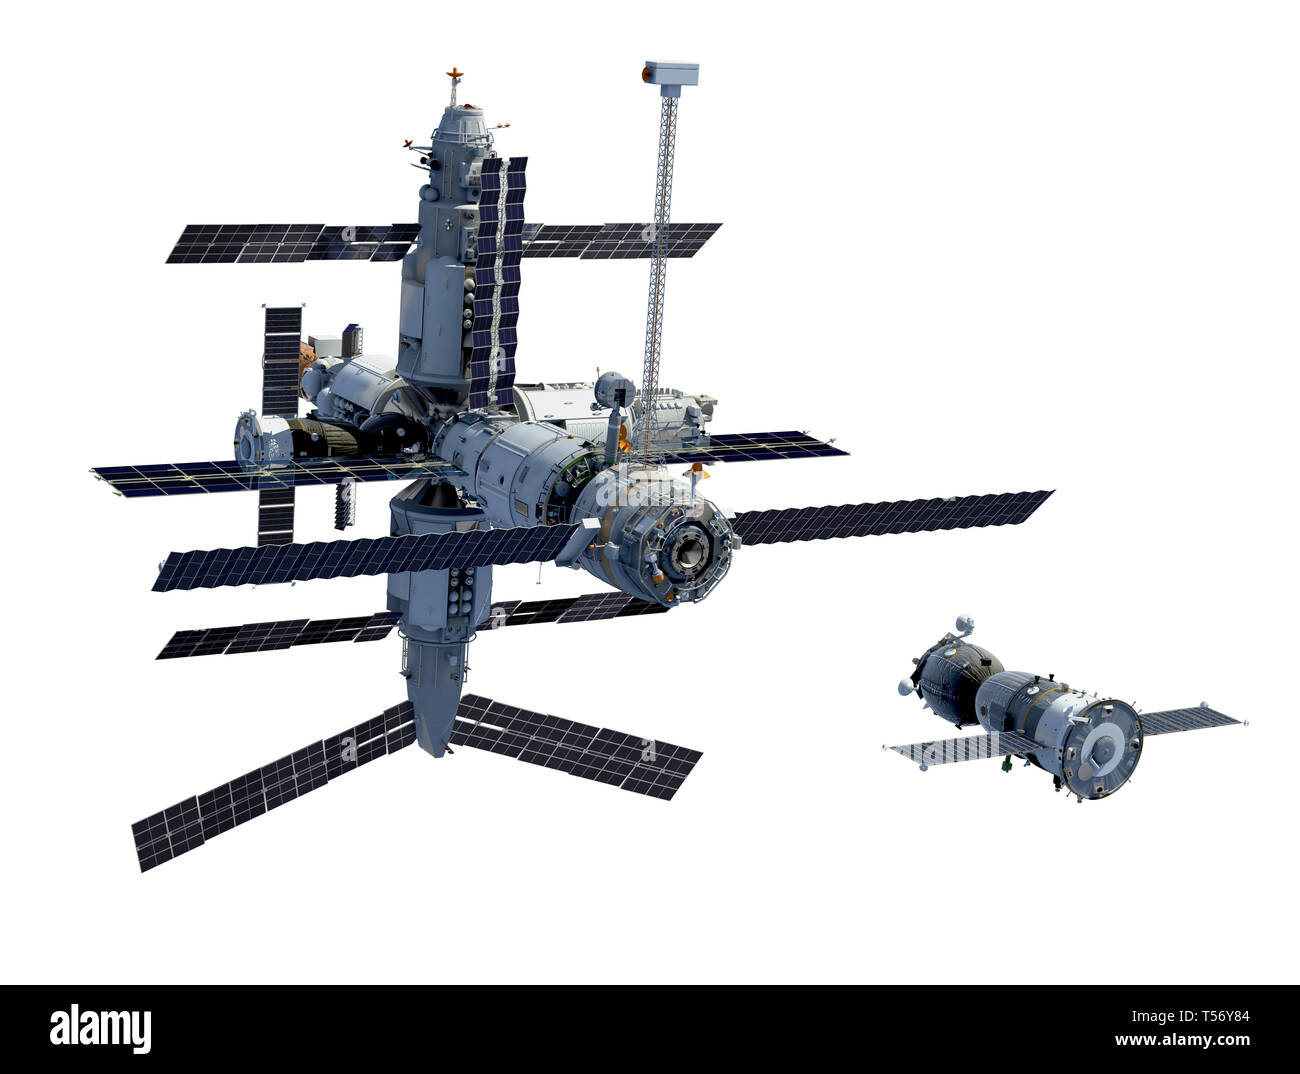 Space Station And Spacecraft Isolated On White Background. 3D Illustration. - Stock Image